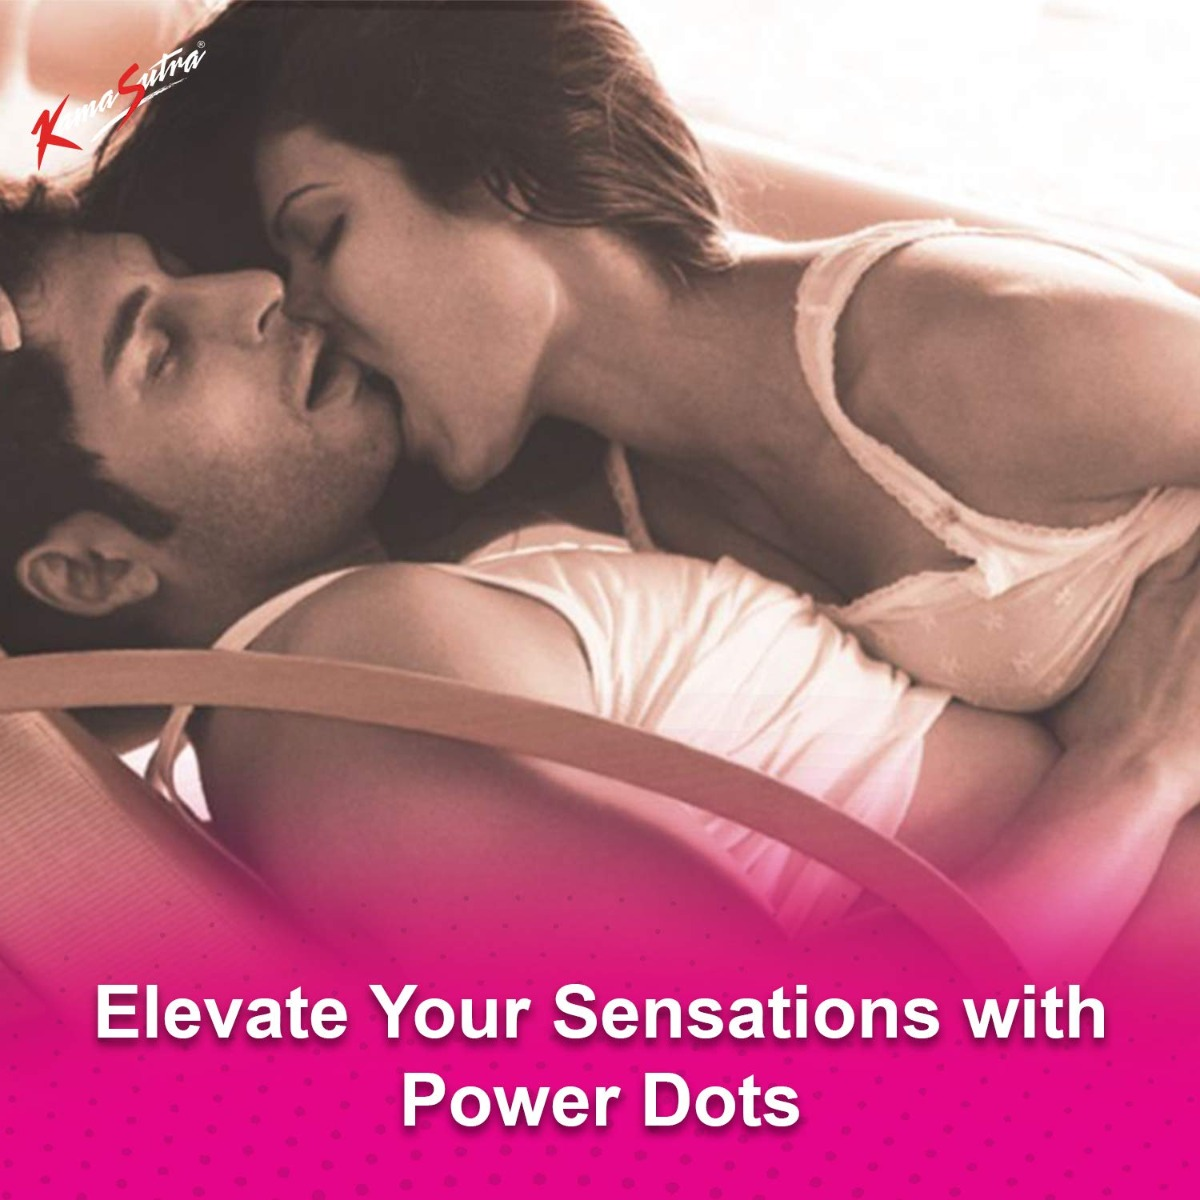 KamaSutra Dotted Condoms for Men - 12 Pcs.